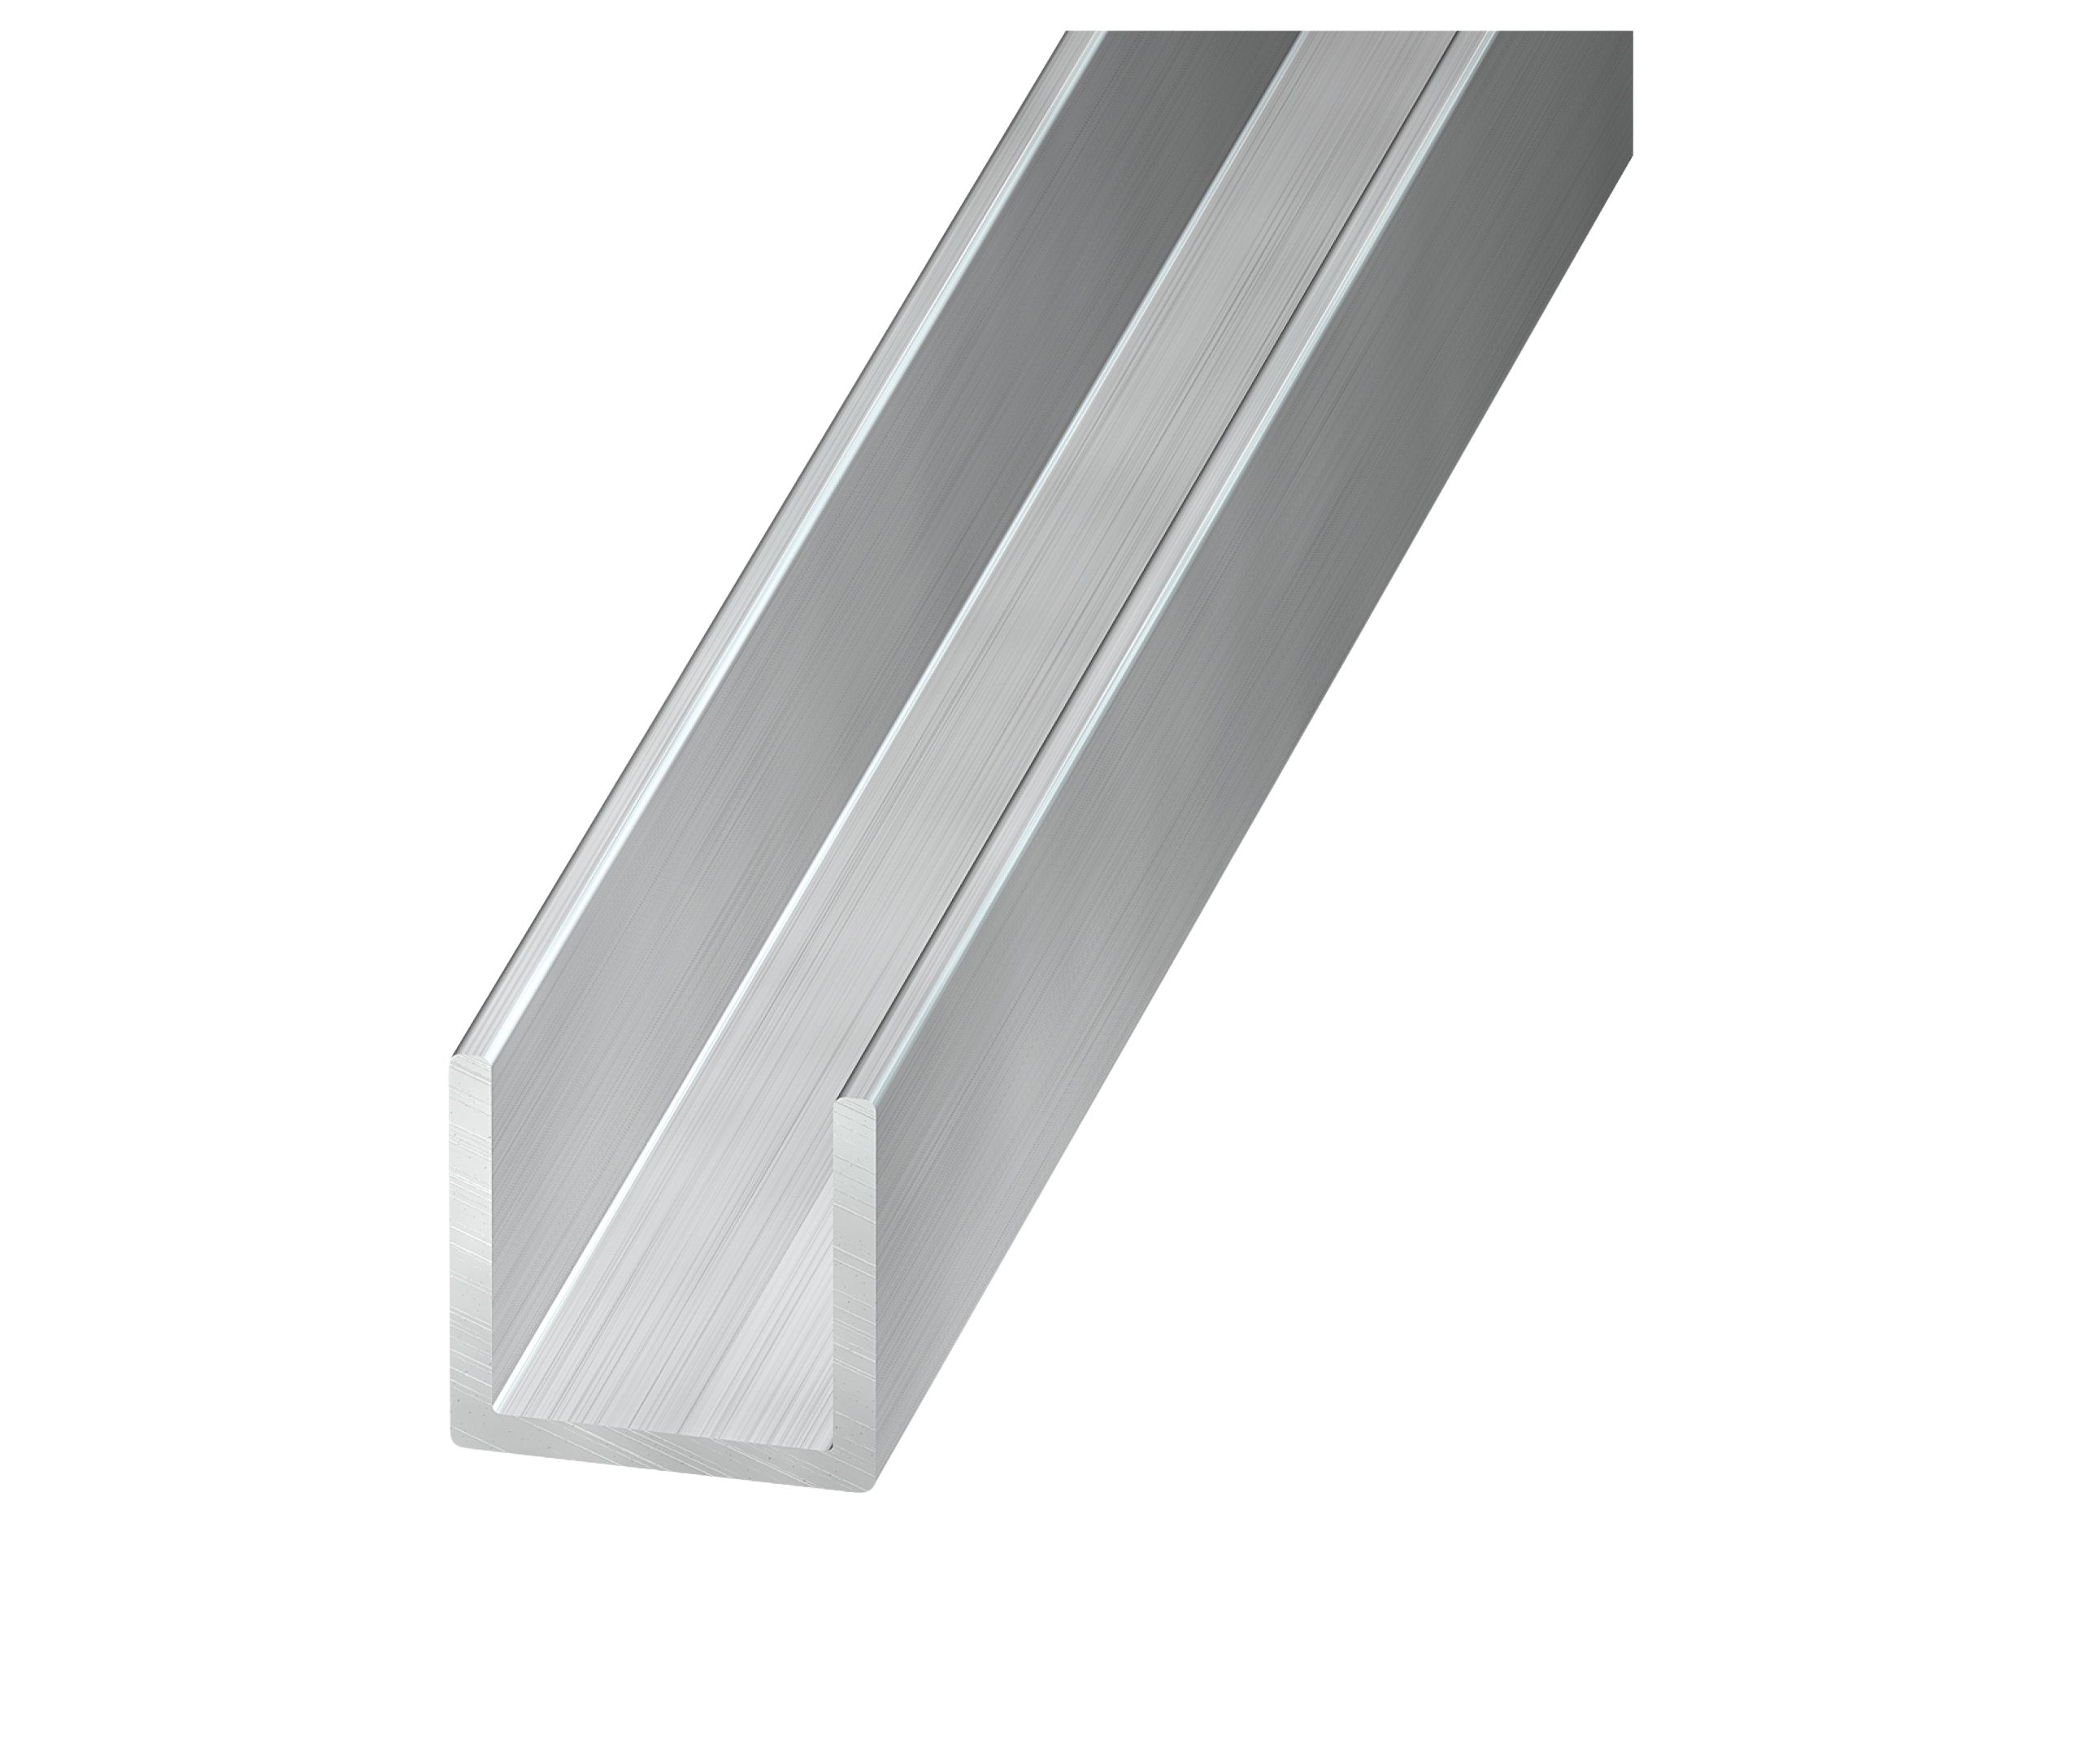 Aluminium U Profile H 6mm W 6mm L 1m Departments